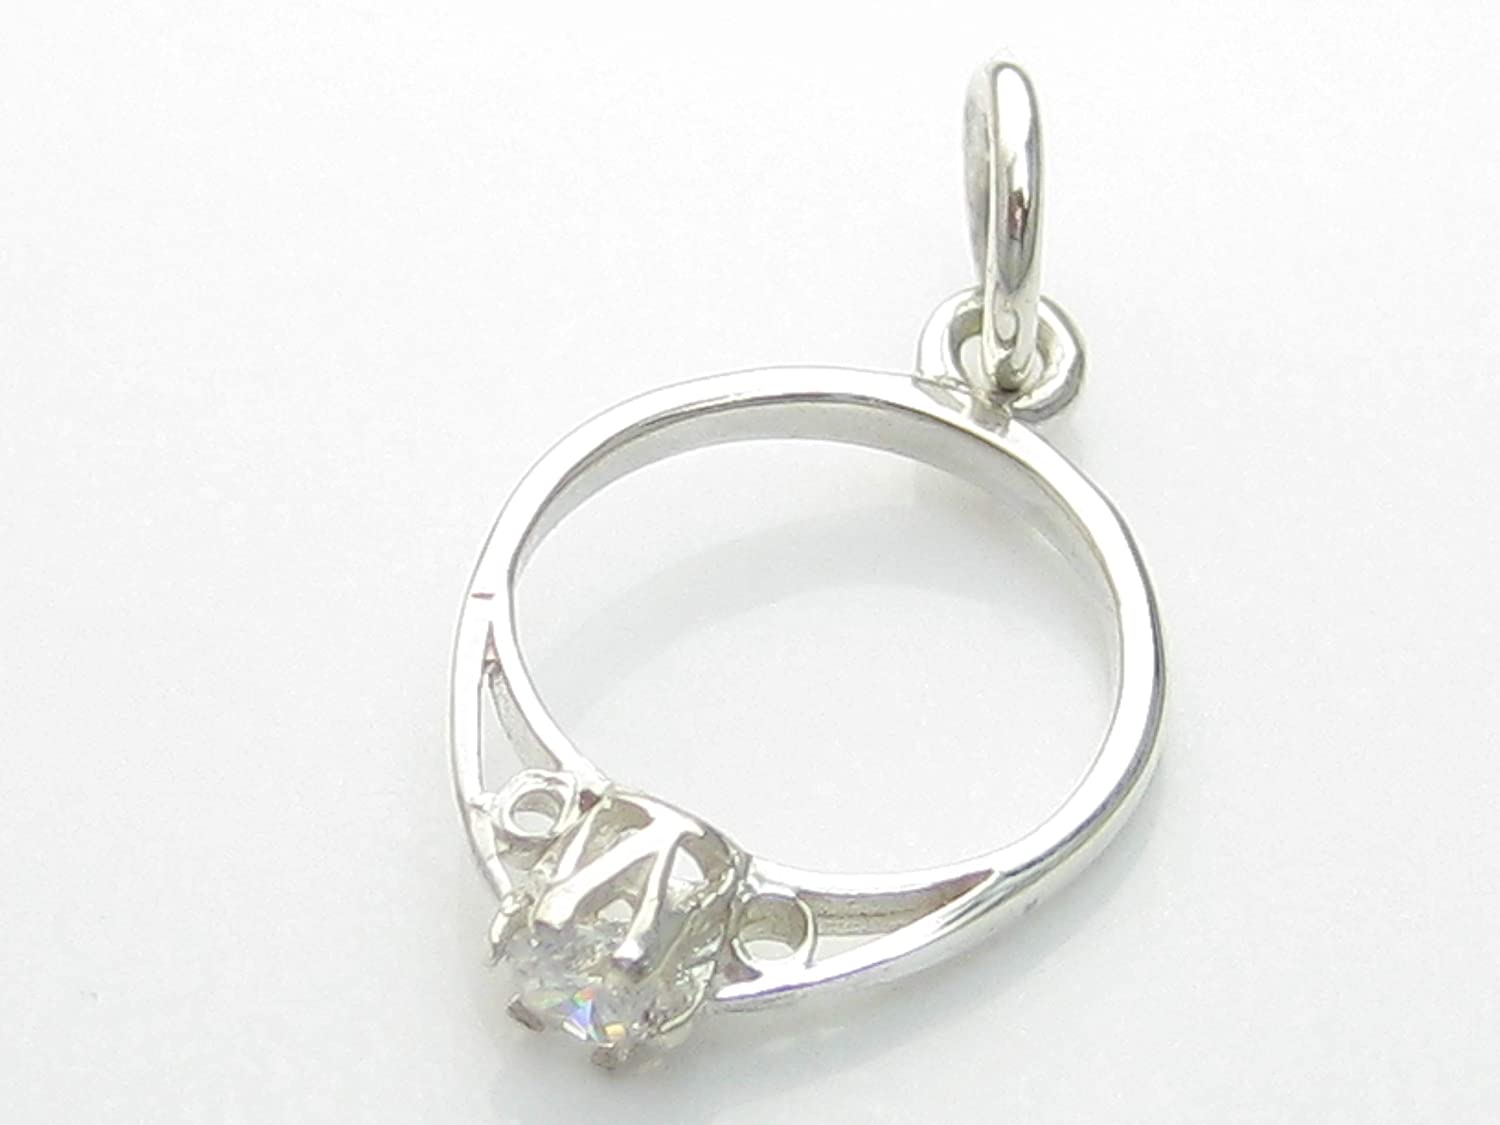 Engagement Ring sterling silver charm .925 x 1 Love charms